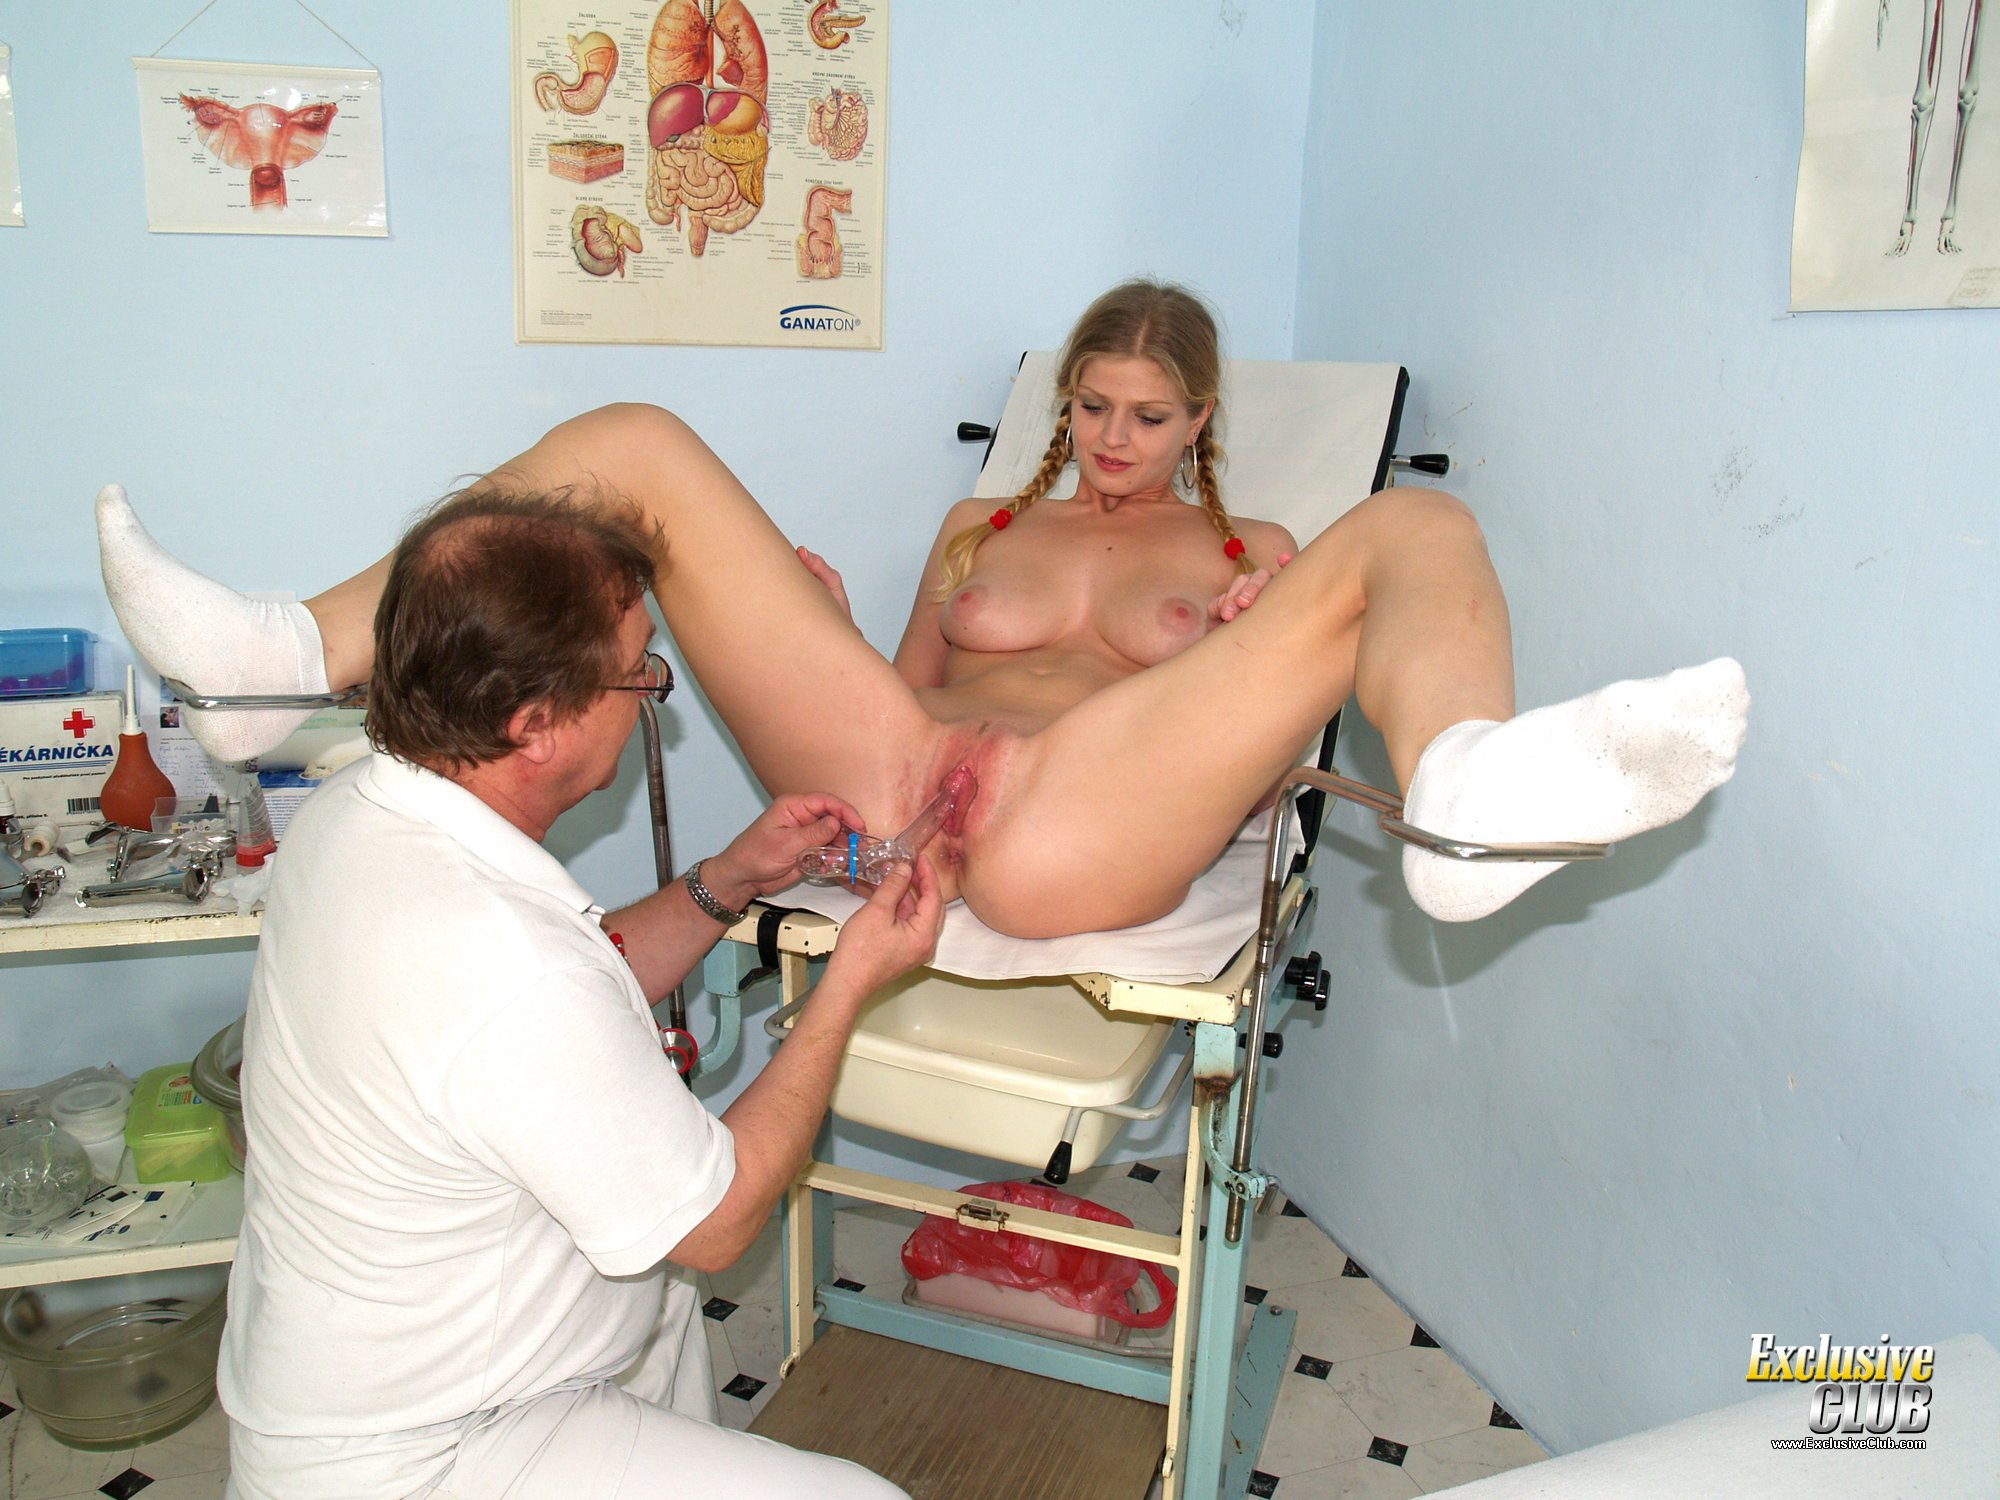 Jenny gyno pussy speculum exam on gynochair by old kinky doc 6